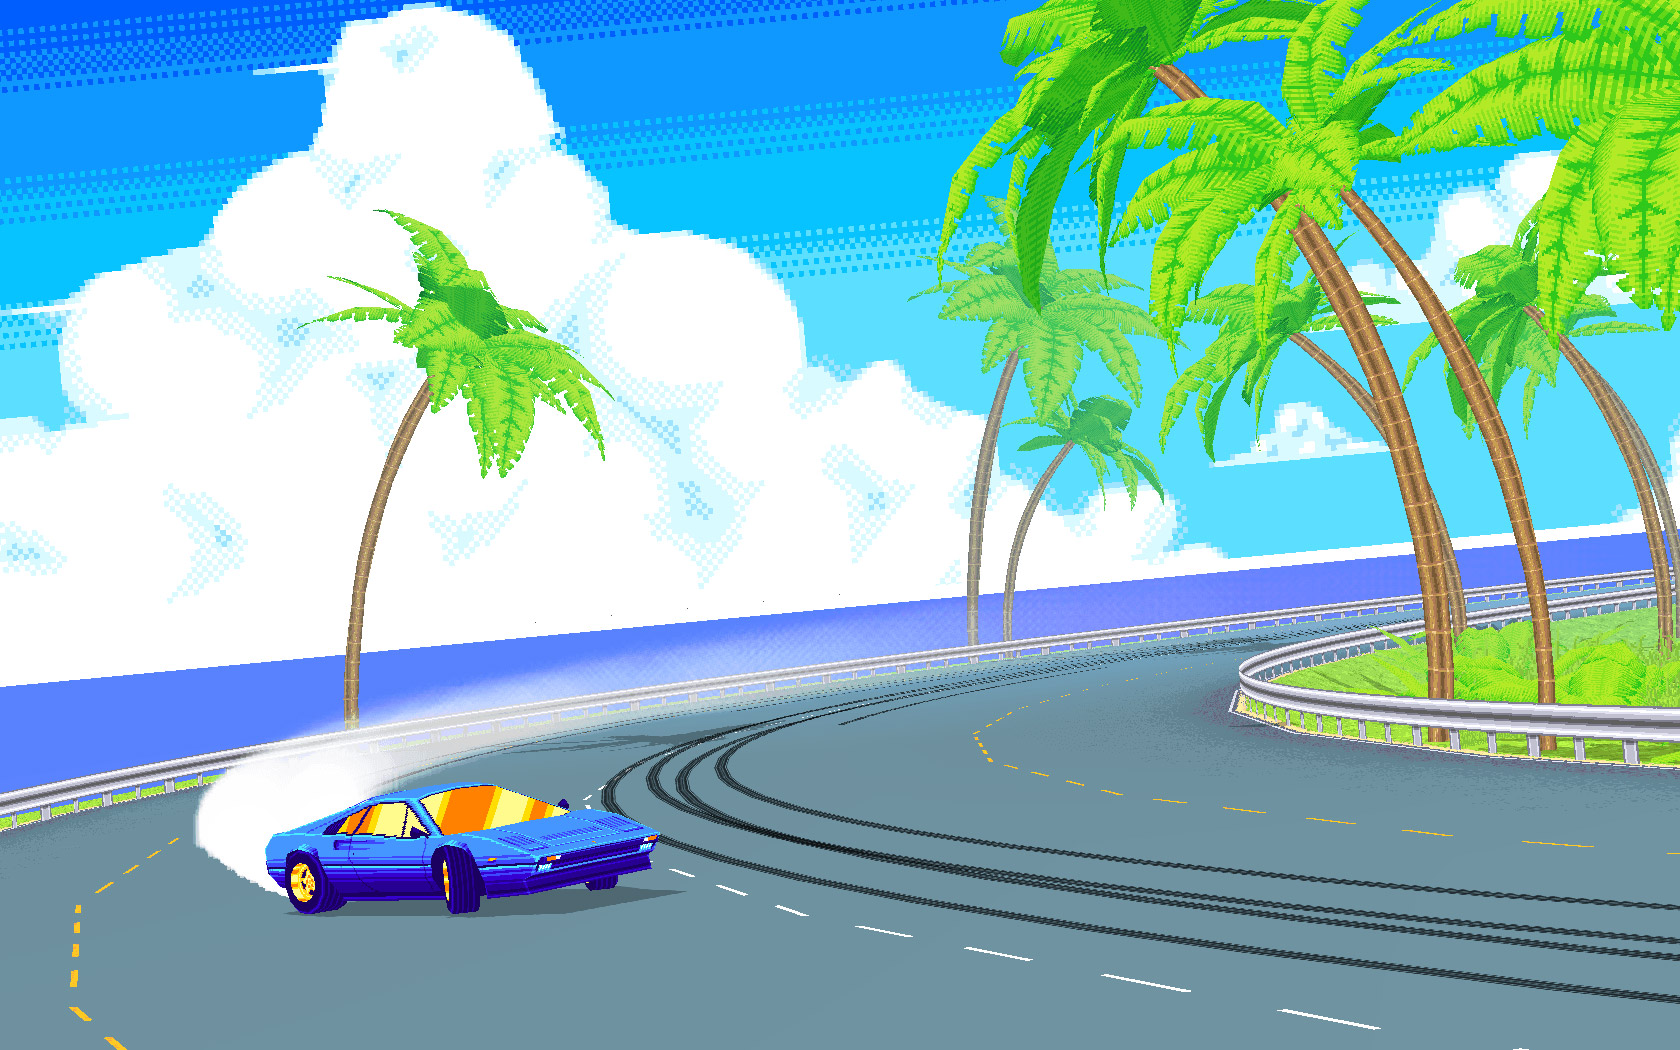 drift stage screenshots all about racing games. Black Bedroom Furniture Sets. Home Design Ideas